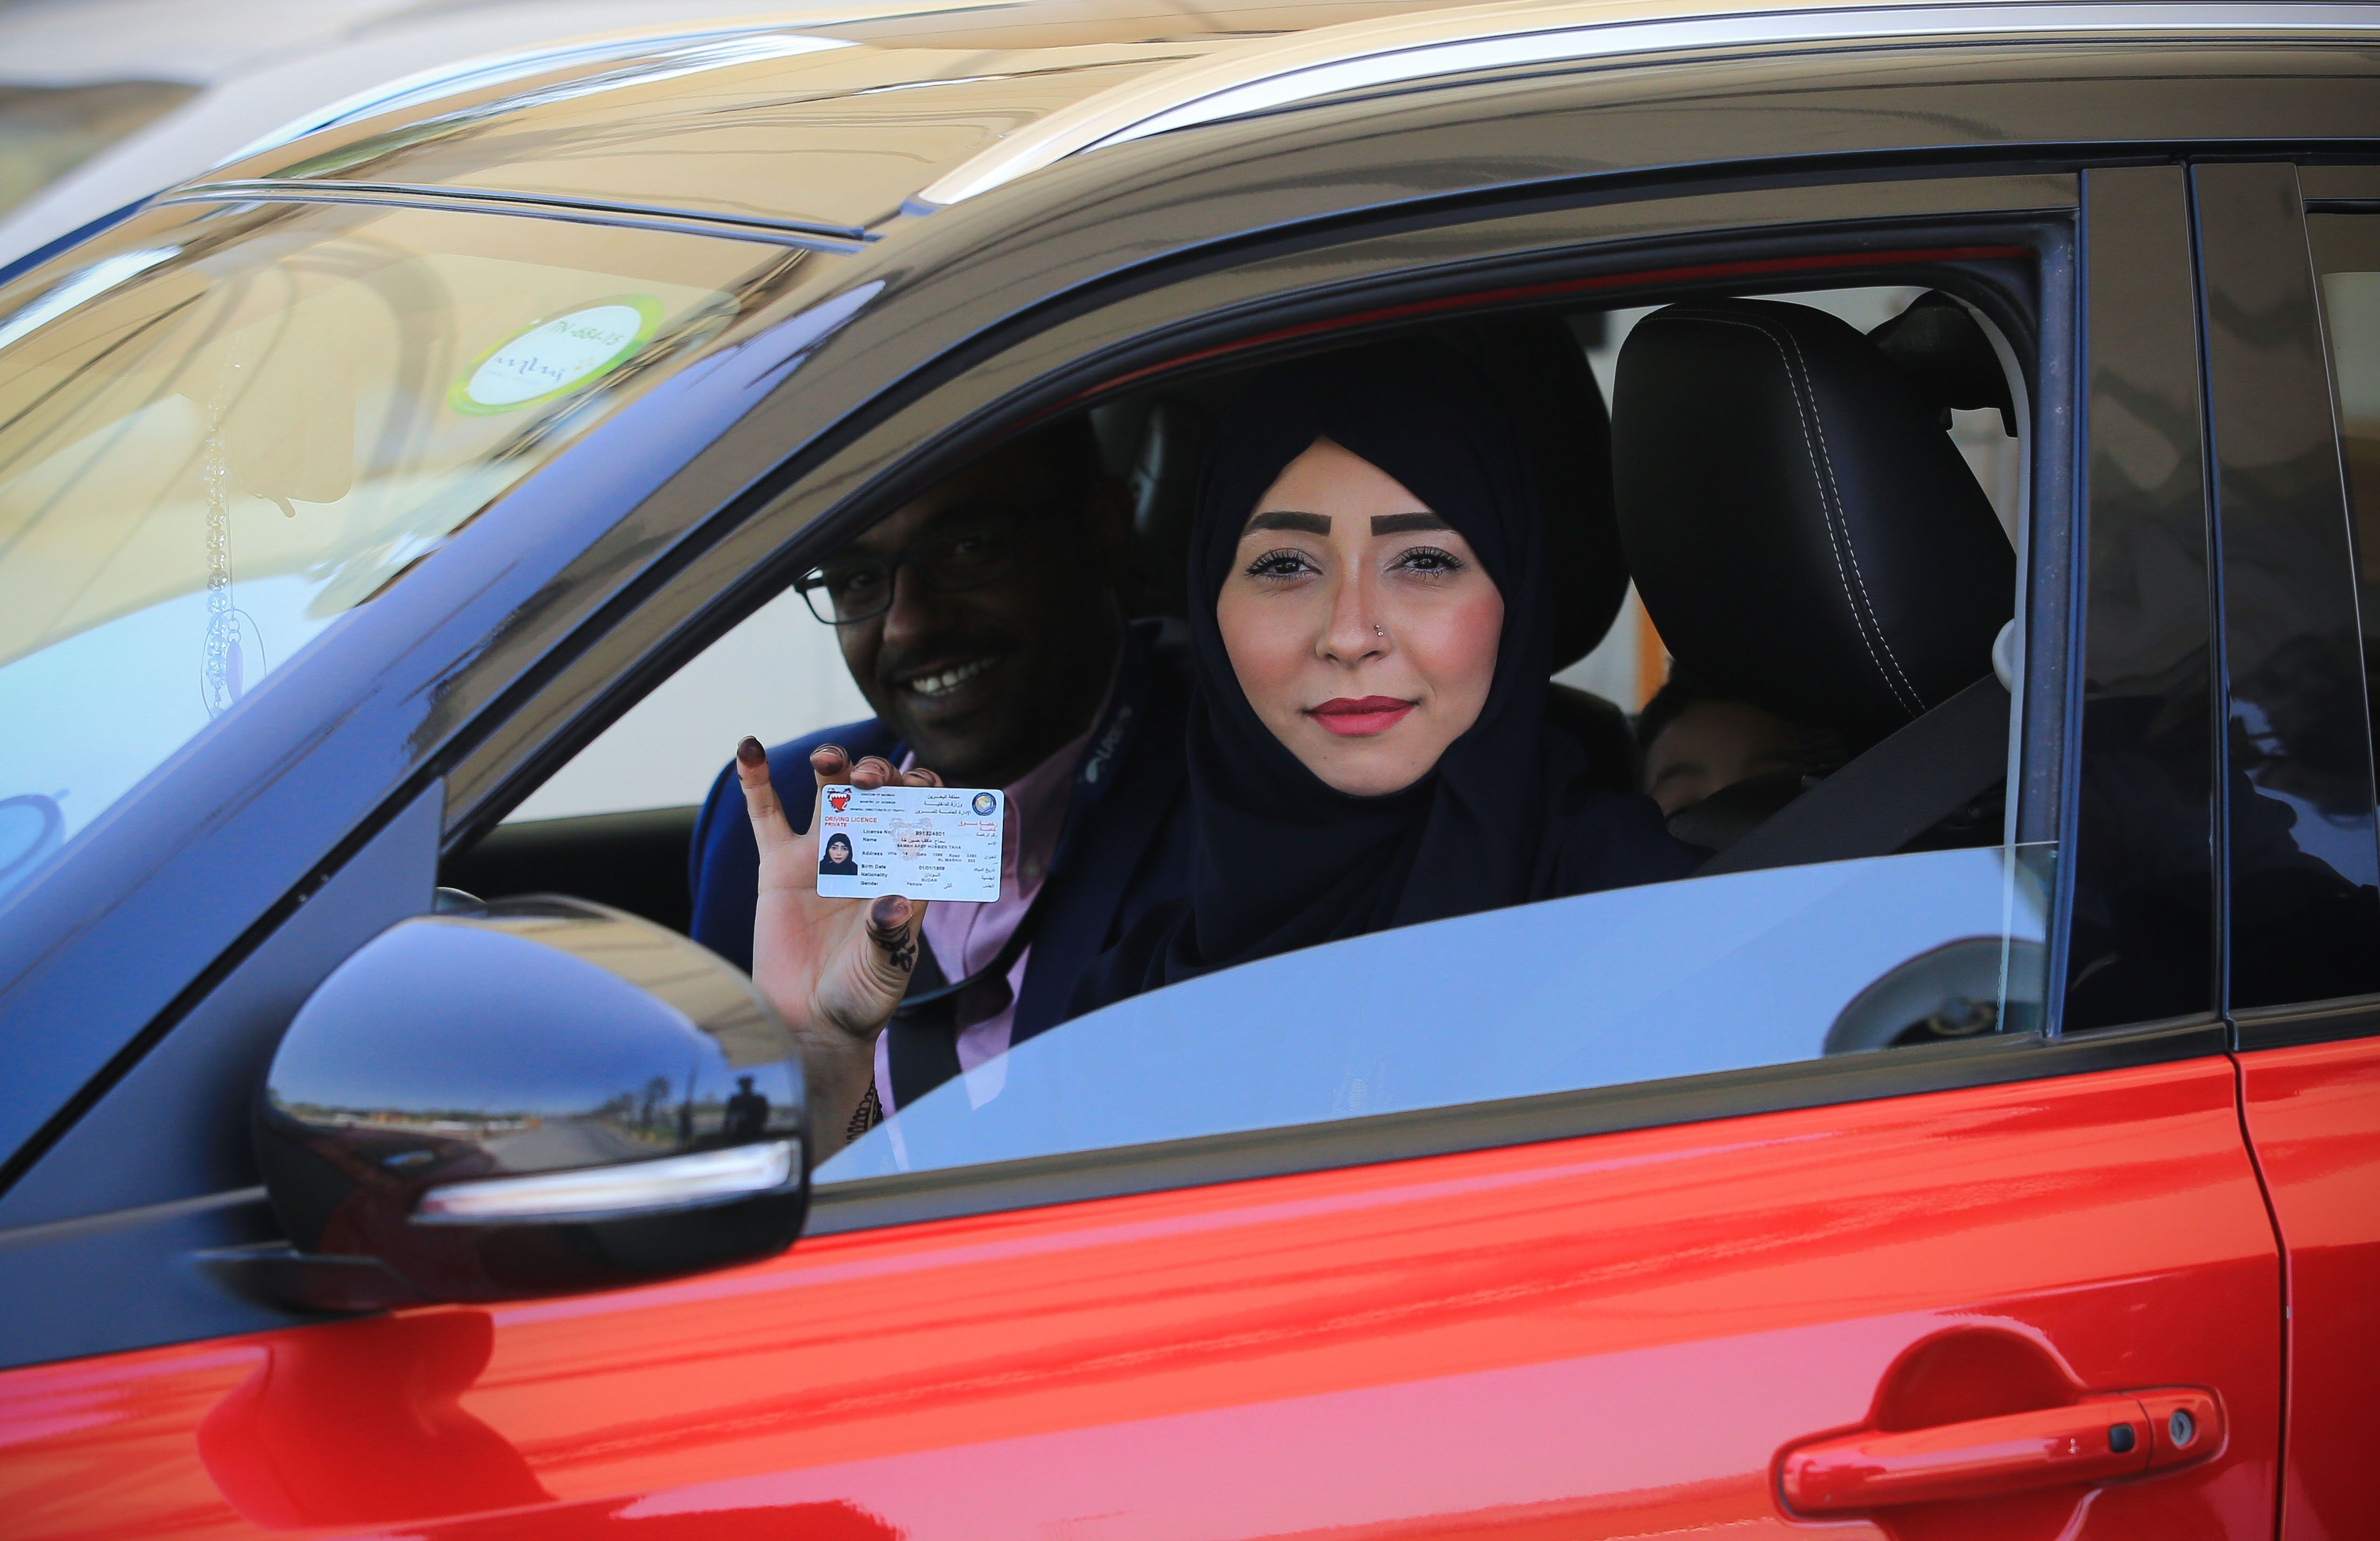 Saudi woman holding up her driver's license